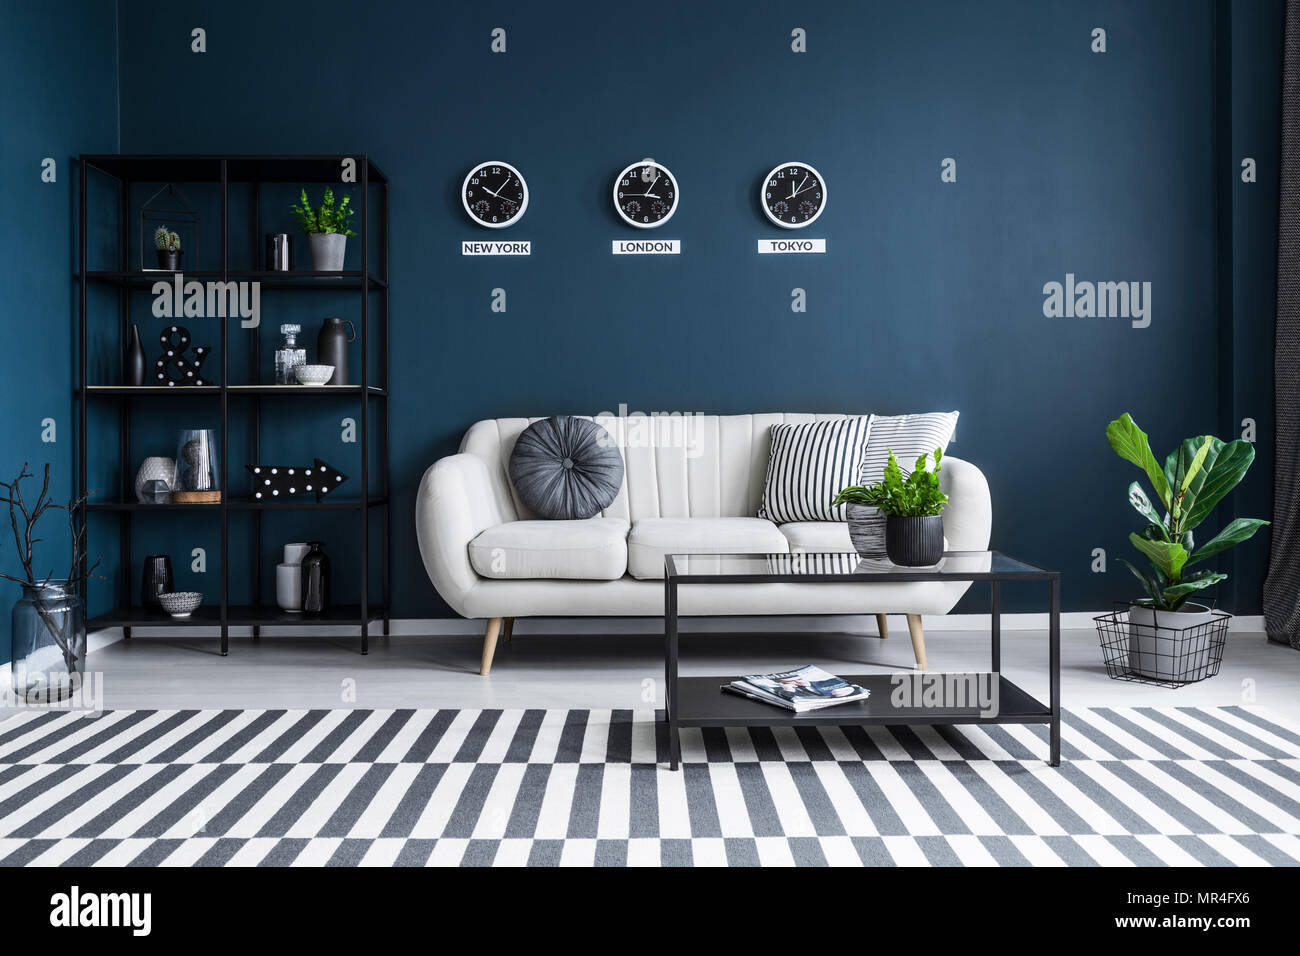 Patterned Carpet In Navy Blue Living Room Interior With Black Table Front Of Beige Couch Stock Photo Alamy